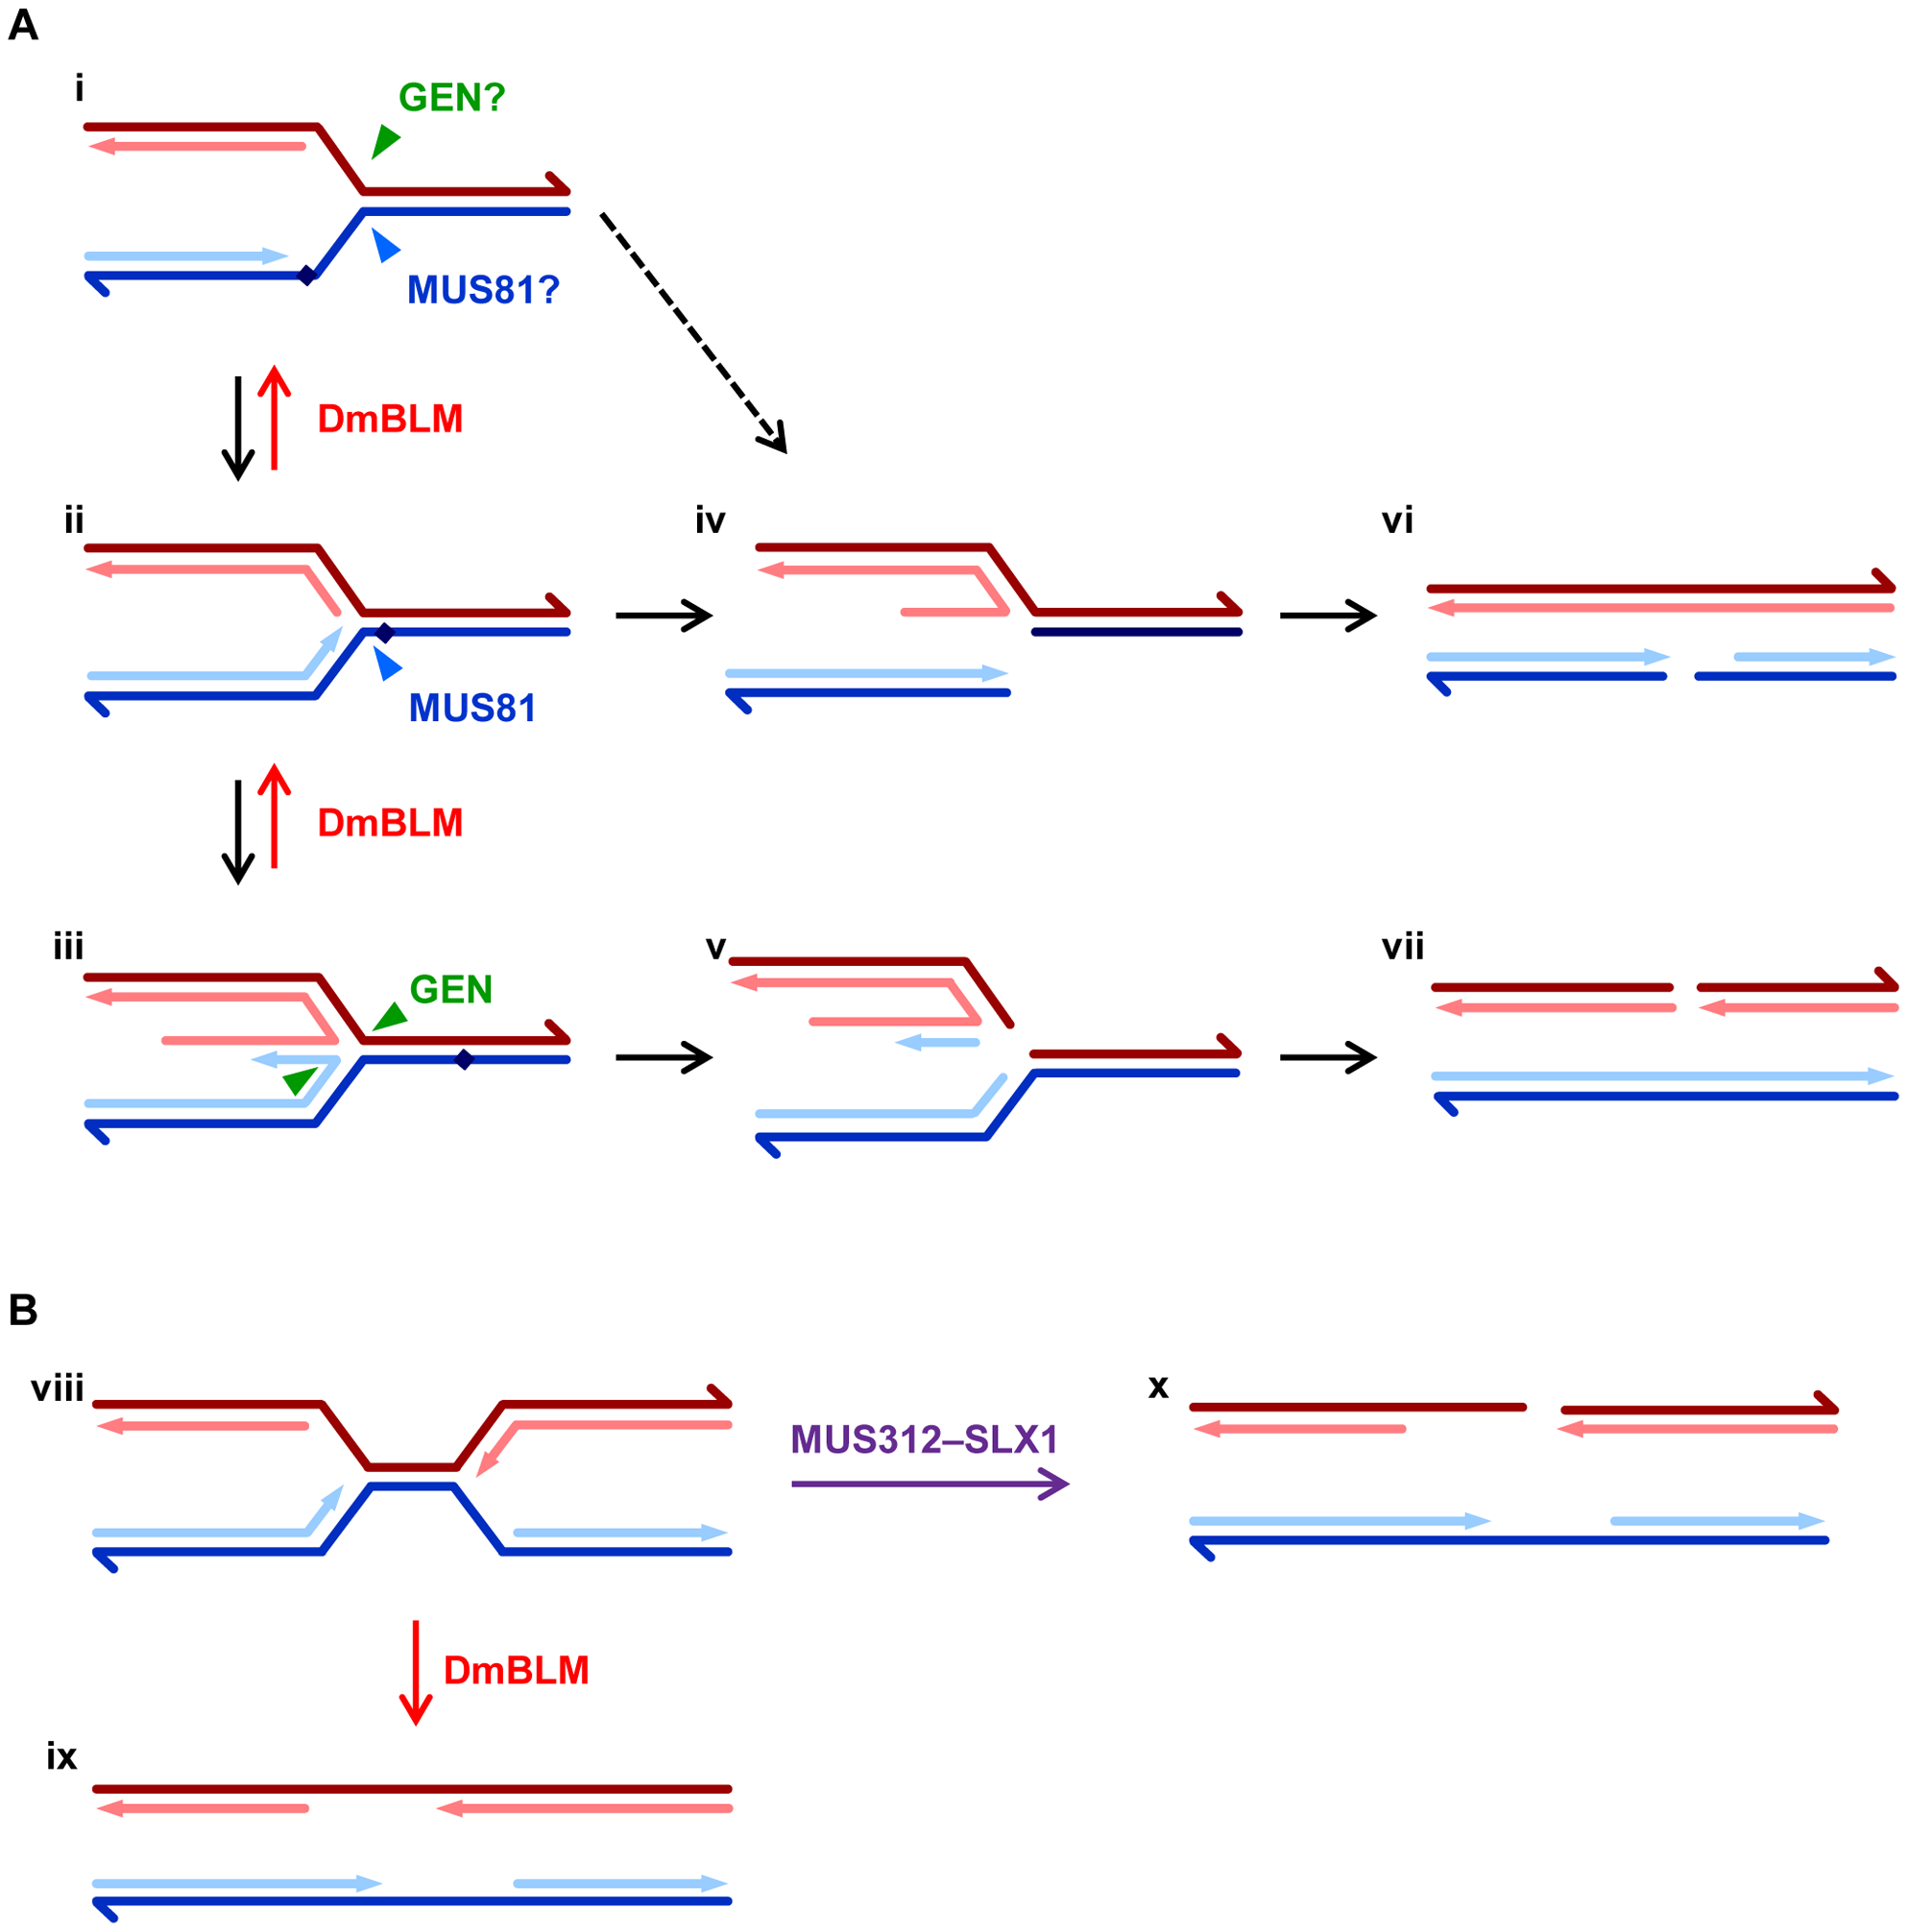 Models for roles of DmBLM and endonucleases in replication fork repair.